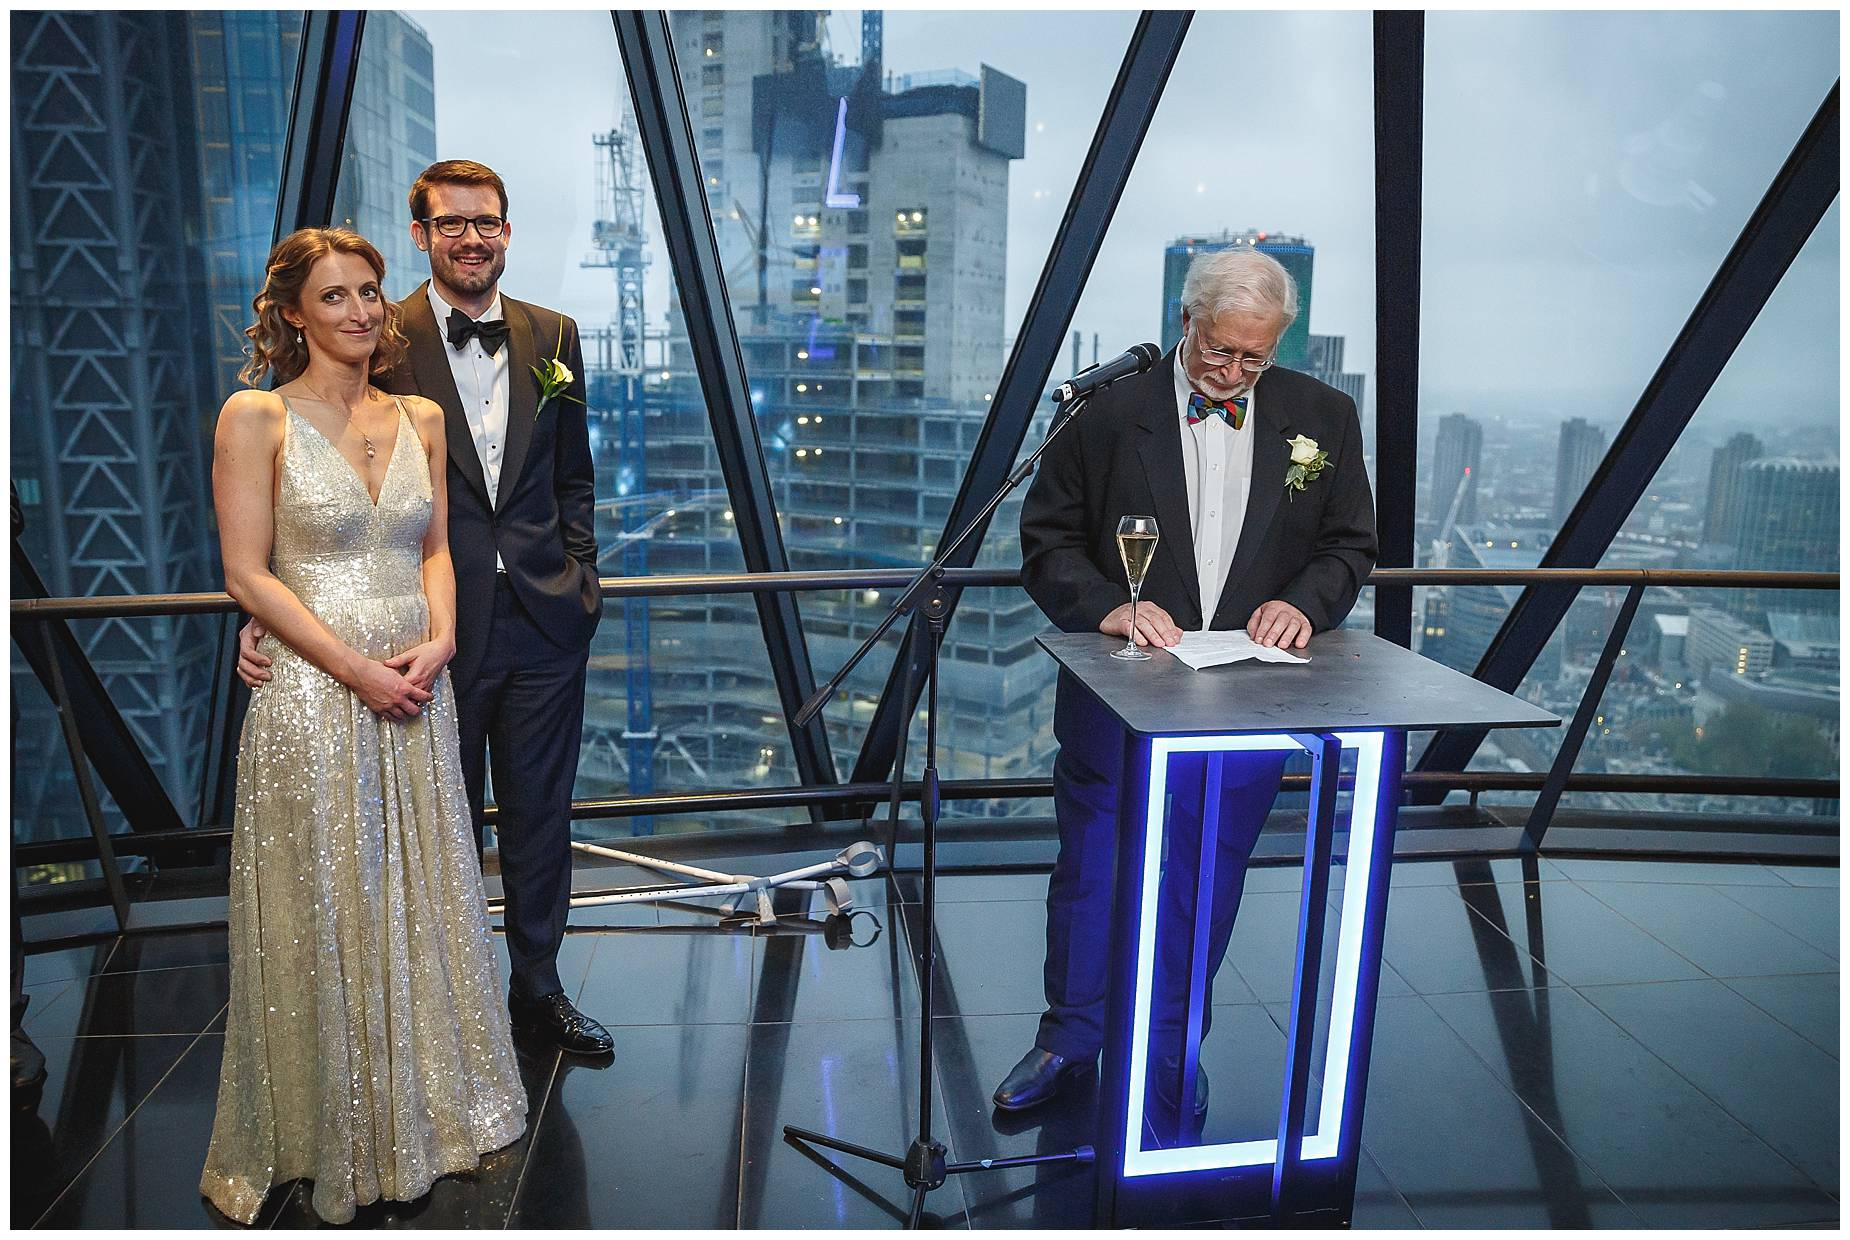 Dads speech at The Gherkin